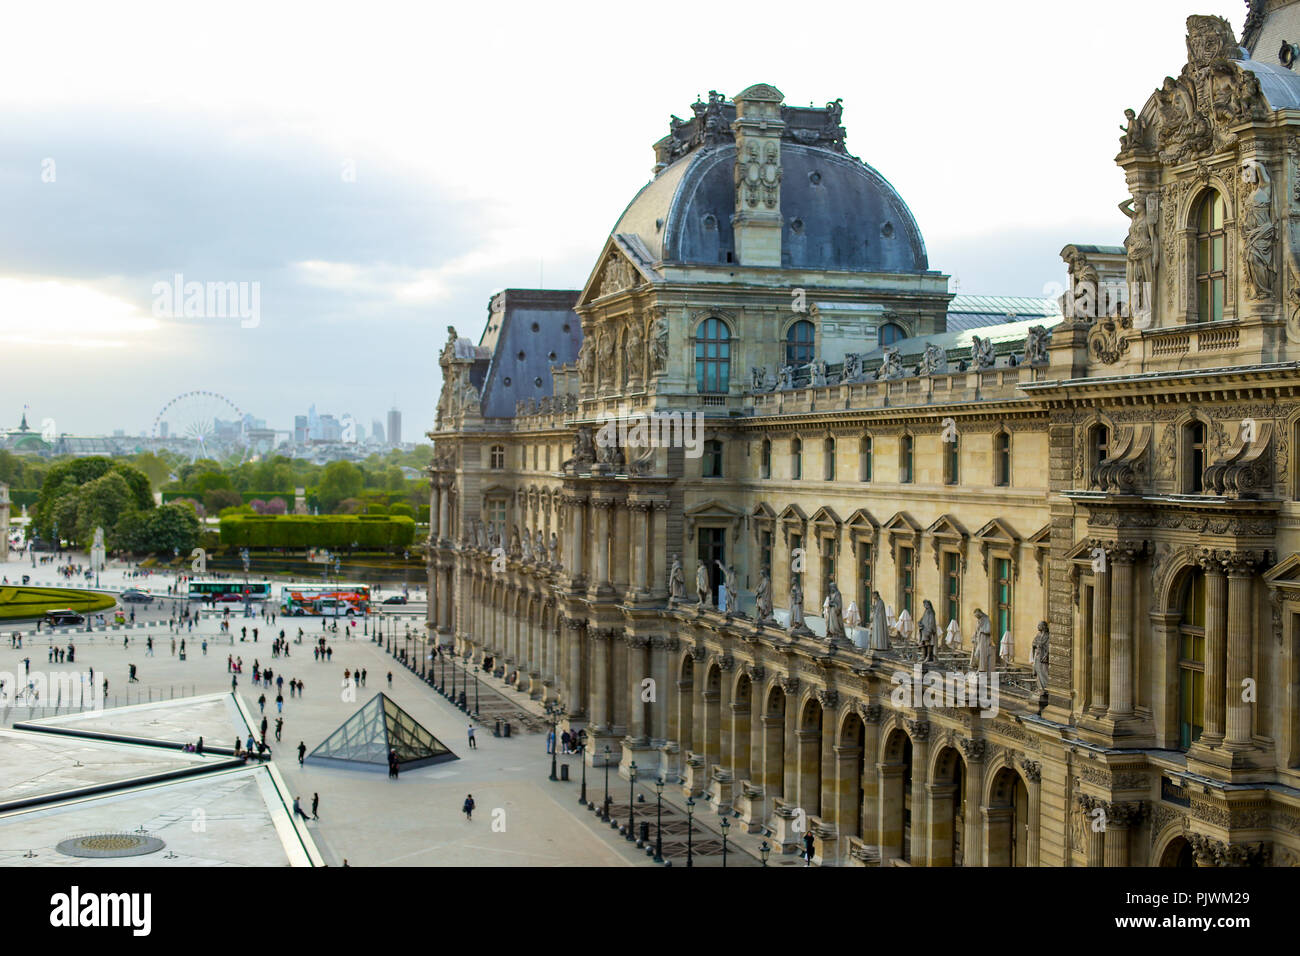 Tourists walking near Louvre in Paris, France. - Stock Image